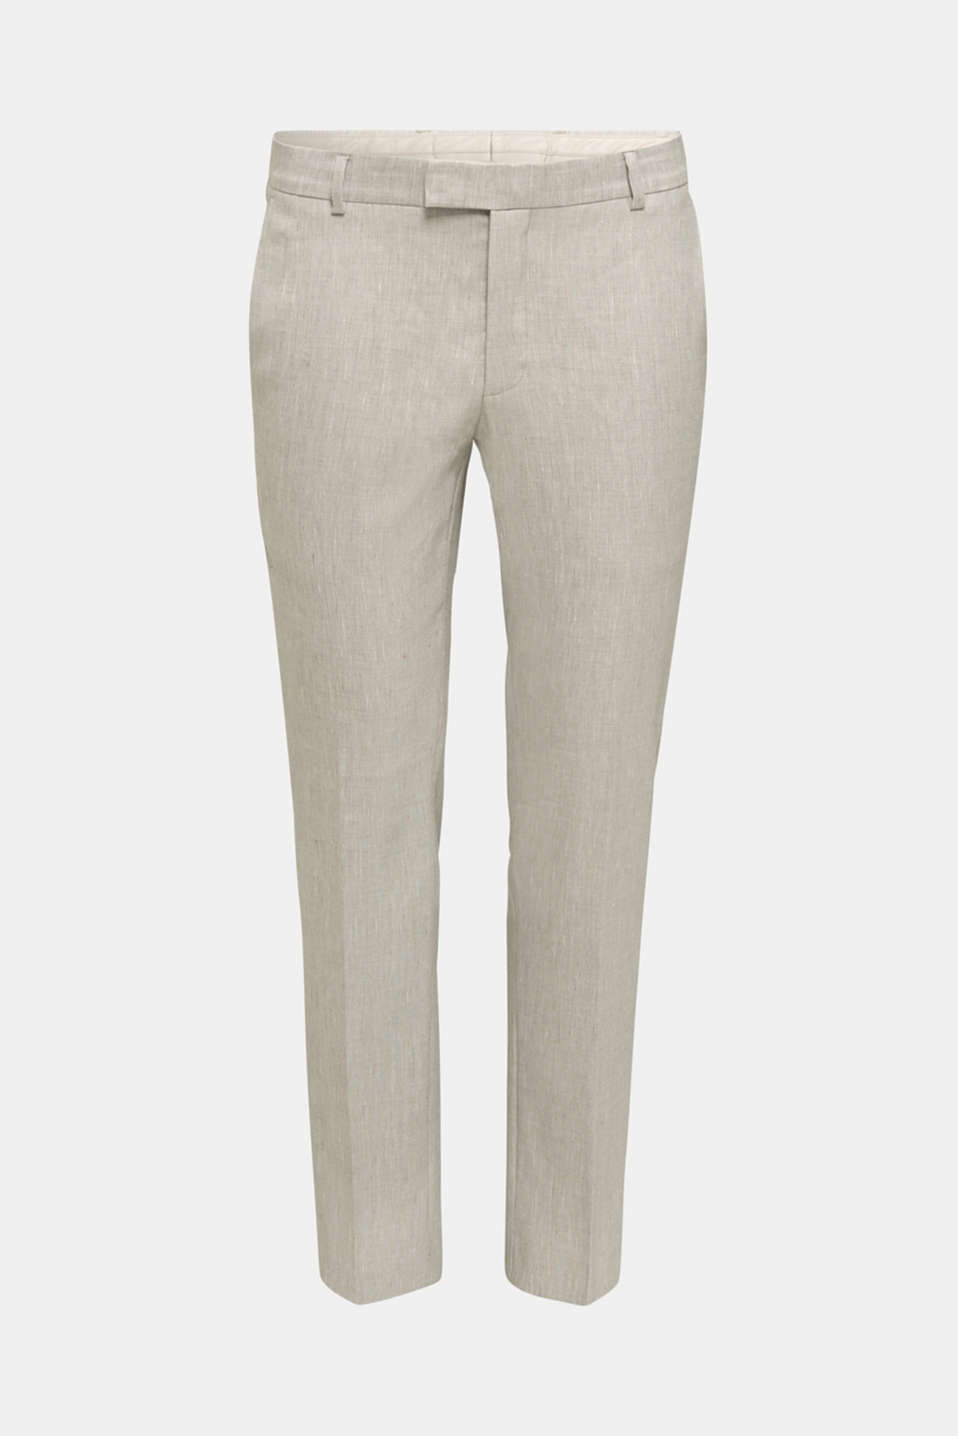 End-on-end linen blend trousers, SAND 5, detail image number 5